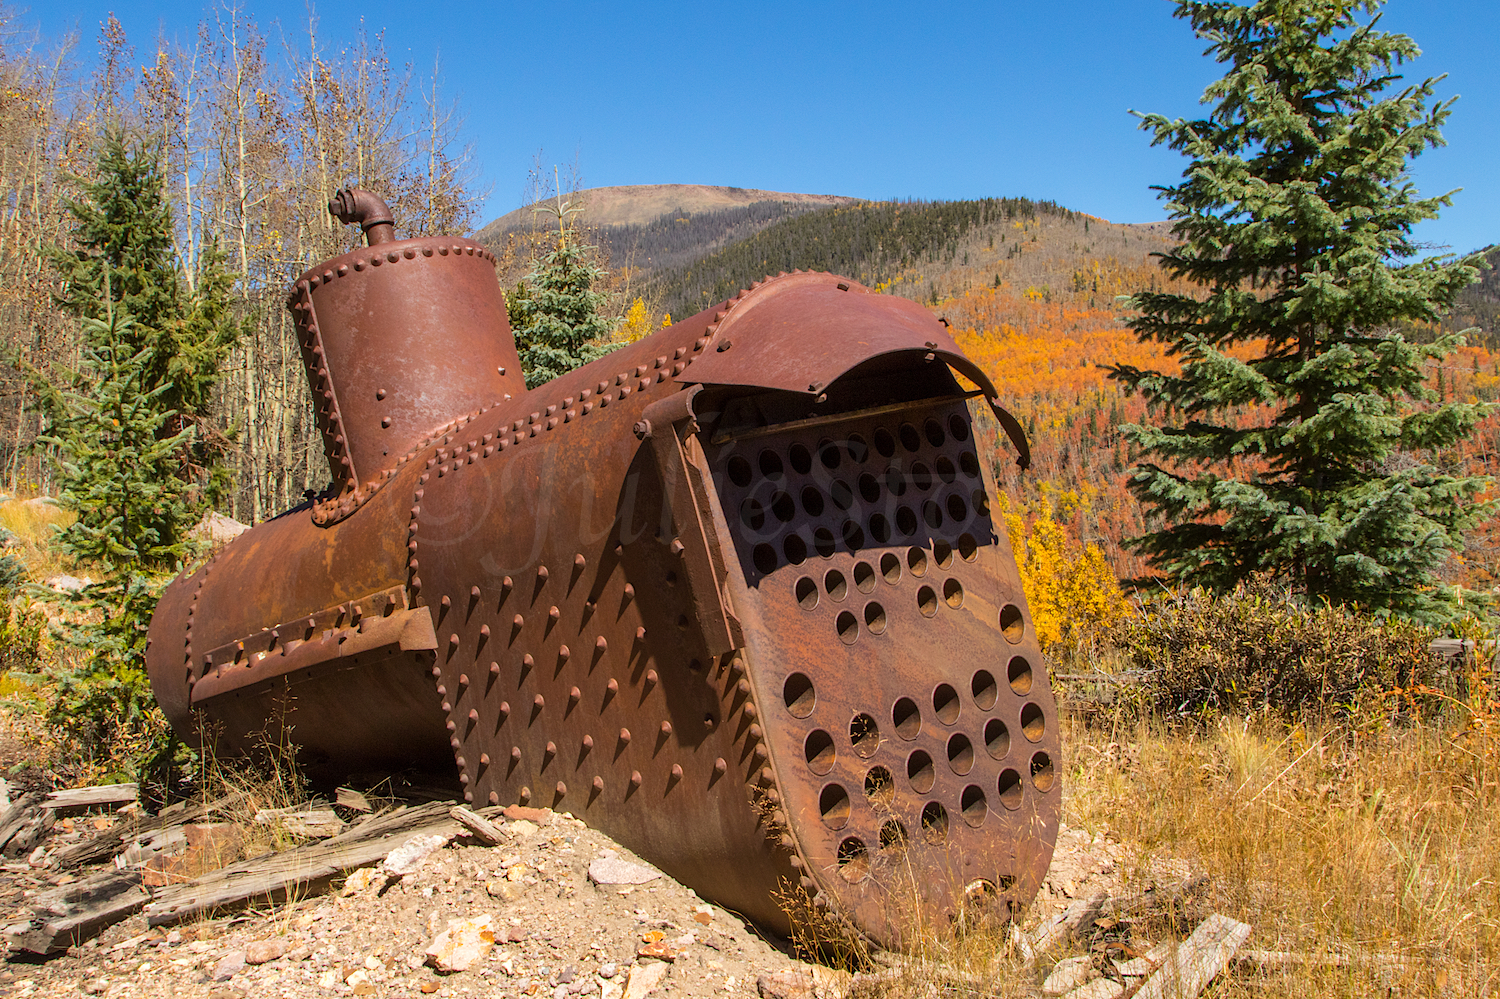 Old Mining Relics, Image # 3914